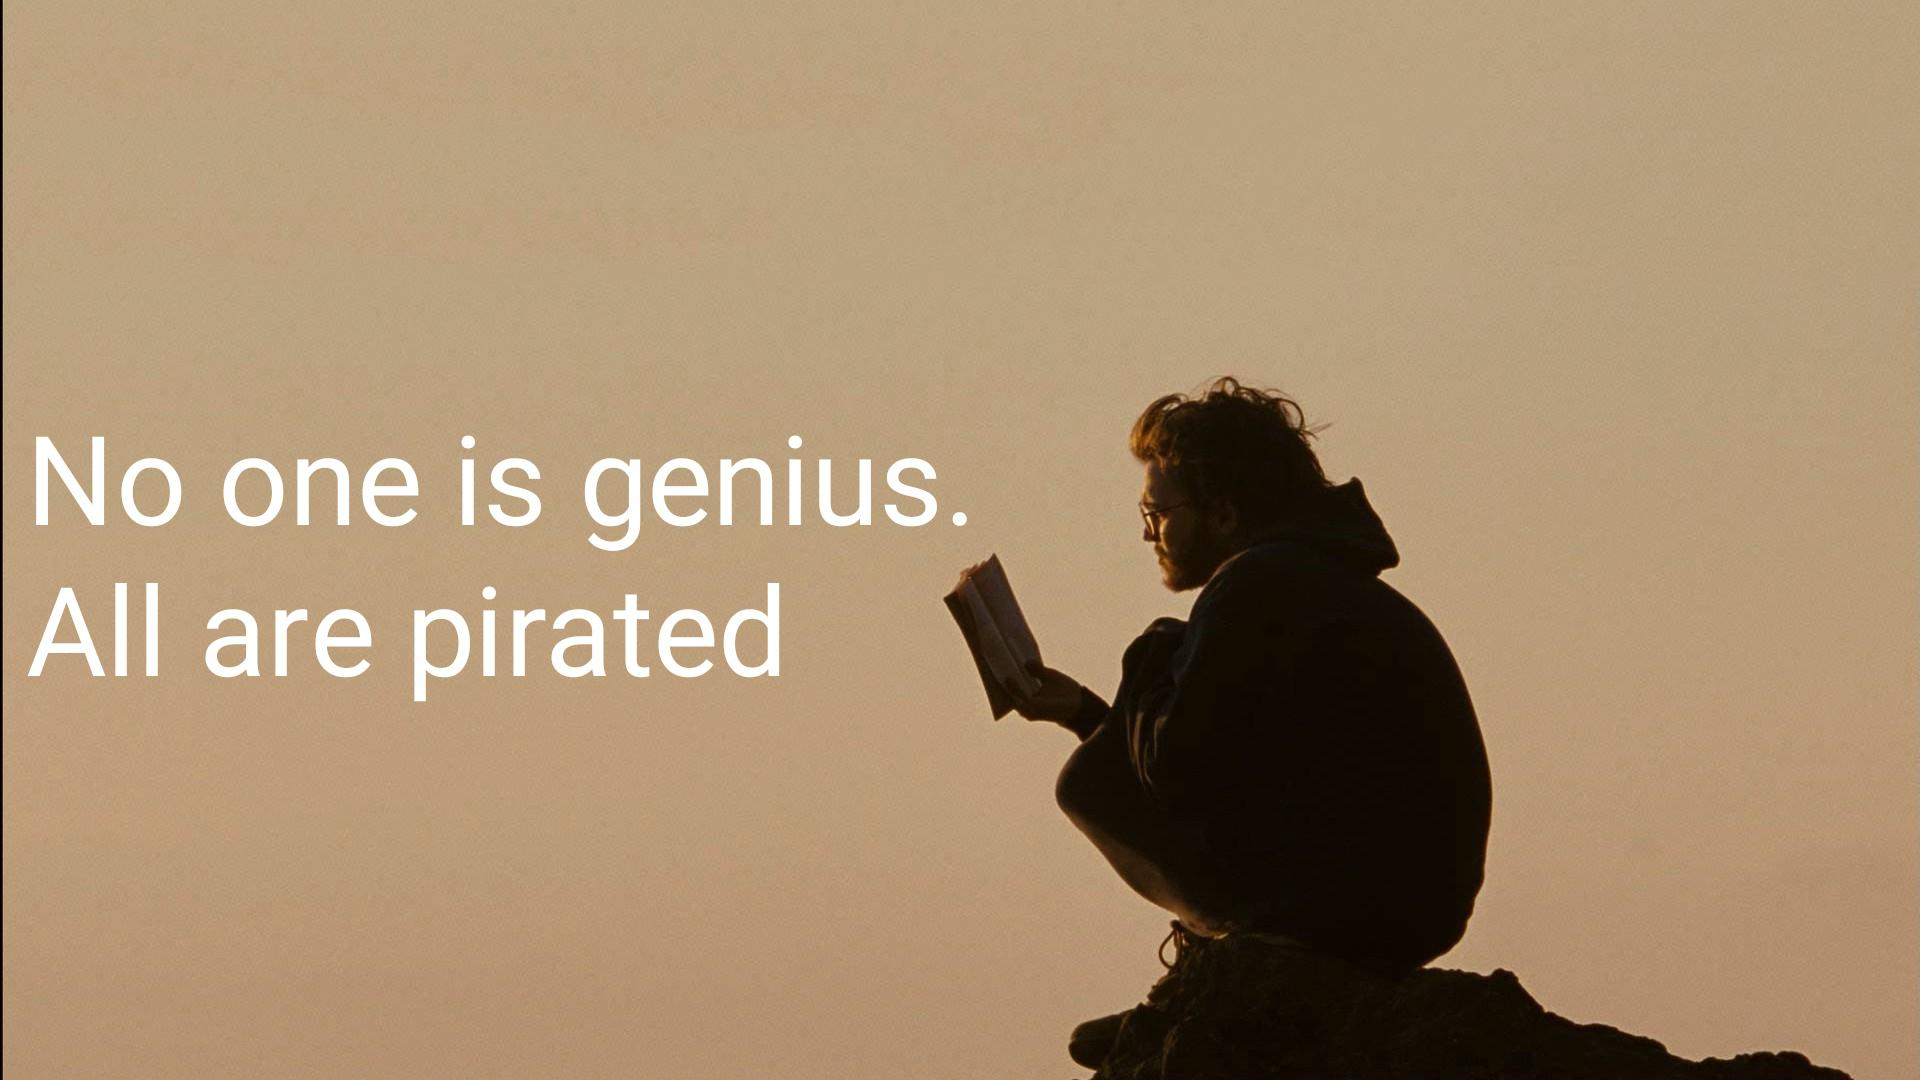 No one is genius. All are pirated. [1920×1080]